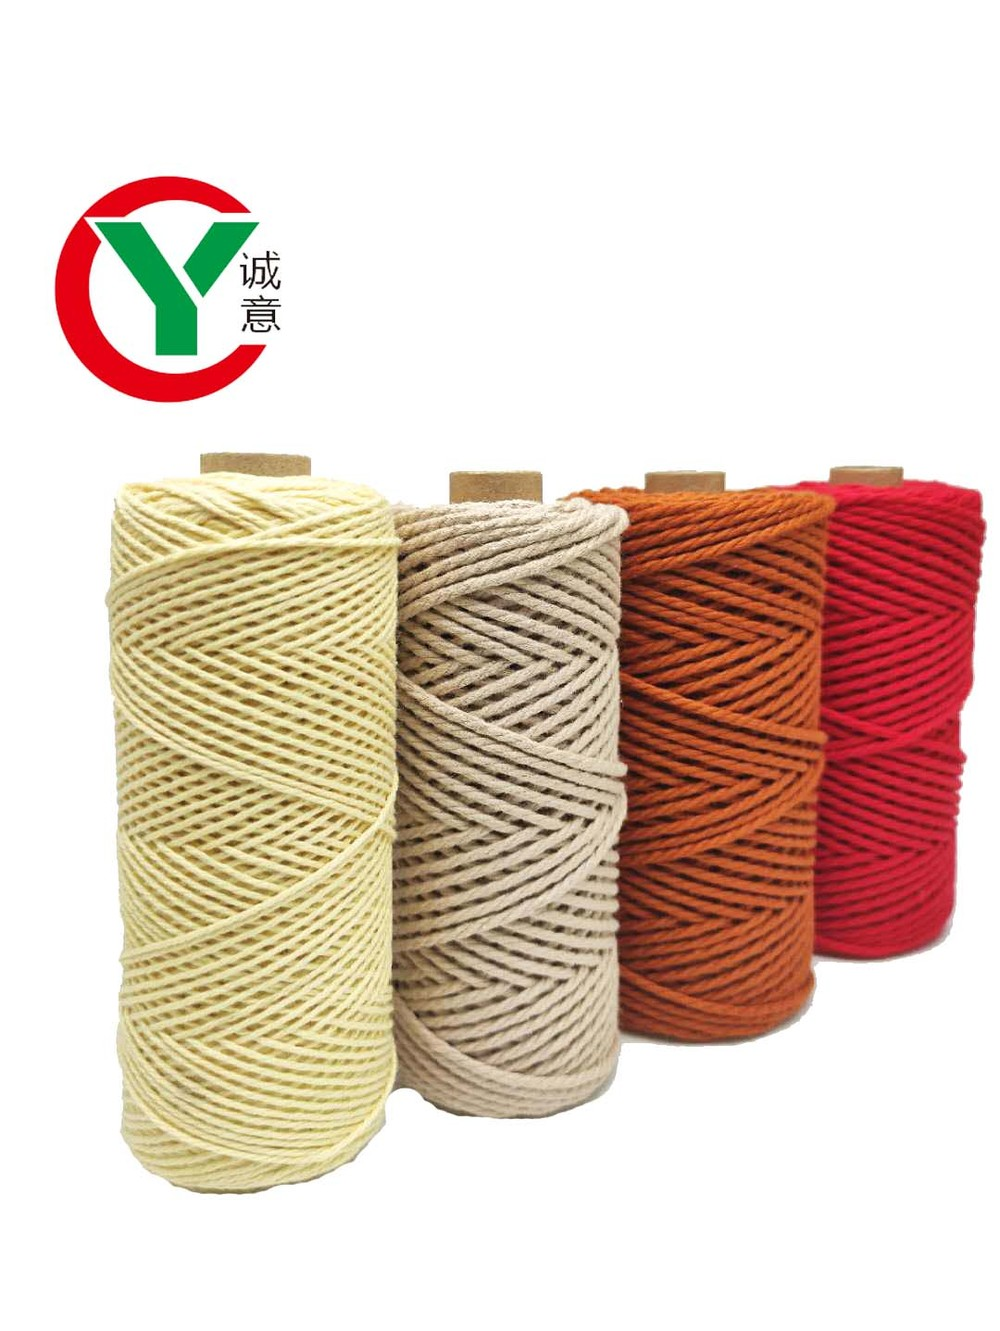 2MM Macrame rope 100% Cotton Natural Color Handmade Soft 4 ply Cotton Cord Rope